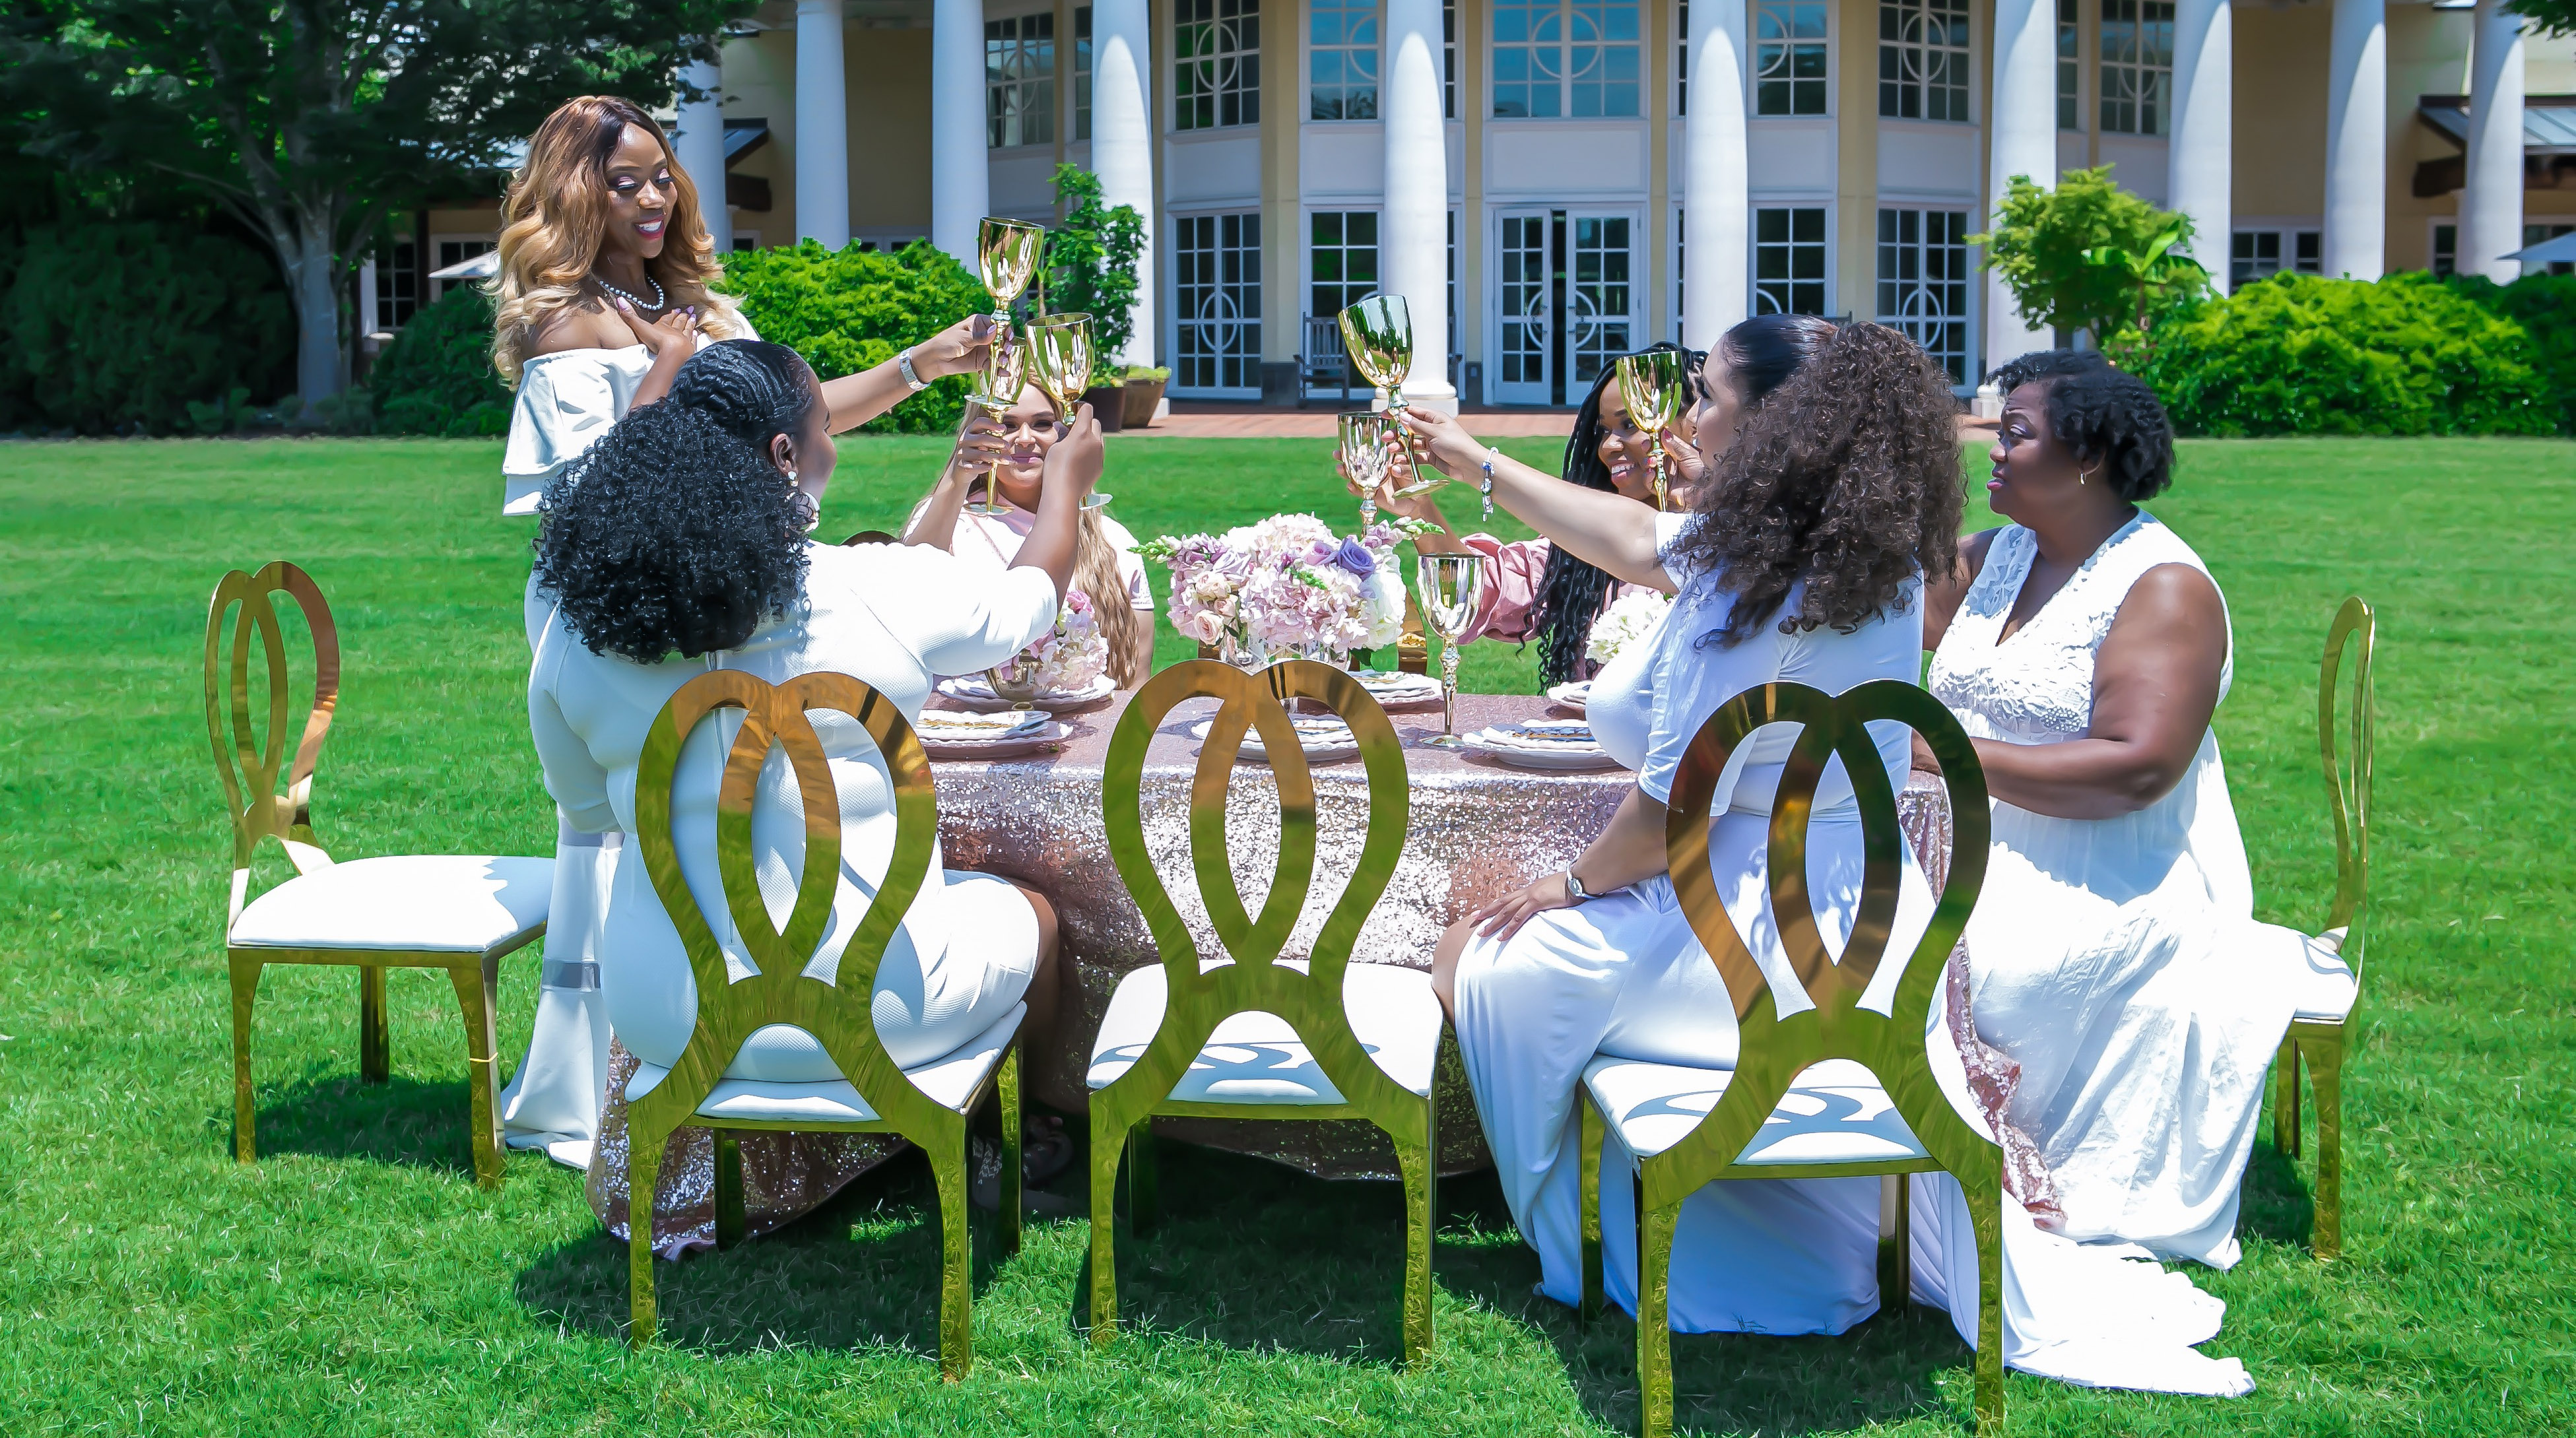 Girl, it's time to network!! 5 Easy ways to grow your connections, today.